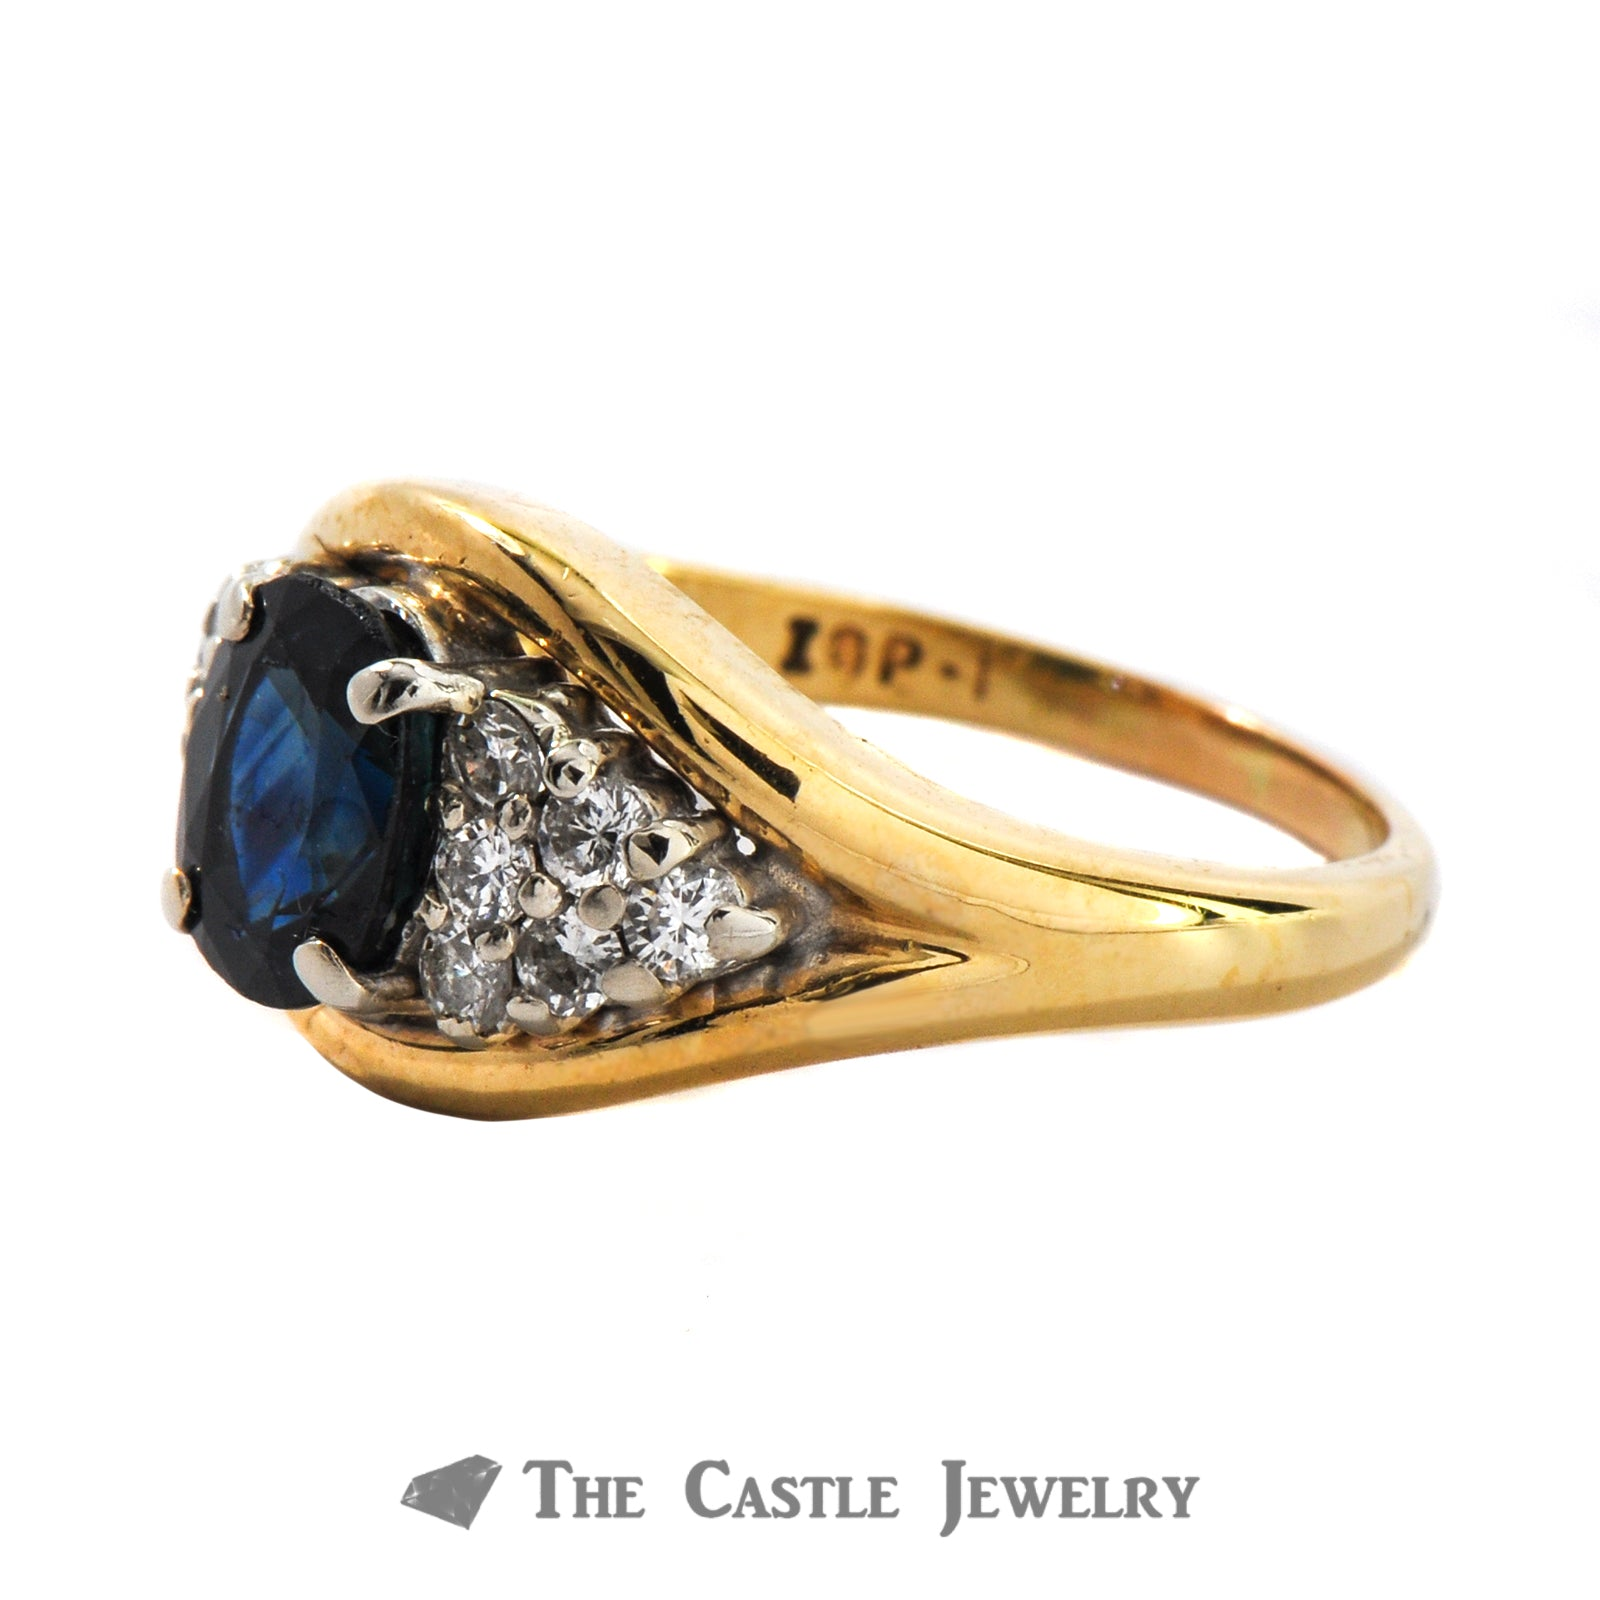 Oval Cut Genuine Blue Sapphire And Diamond Ring in 10K Yellow Gold-1